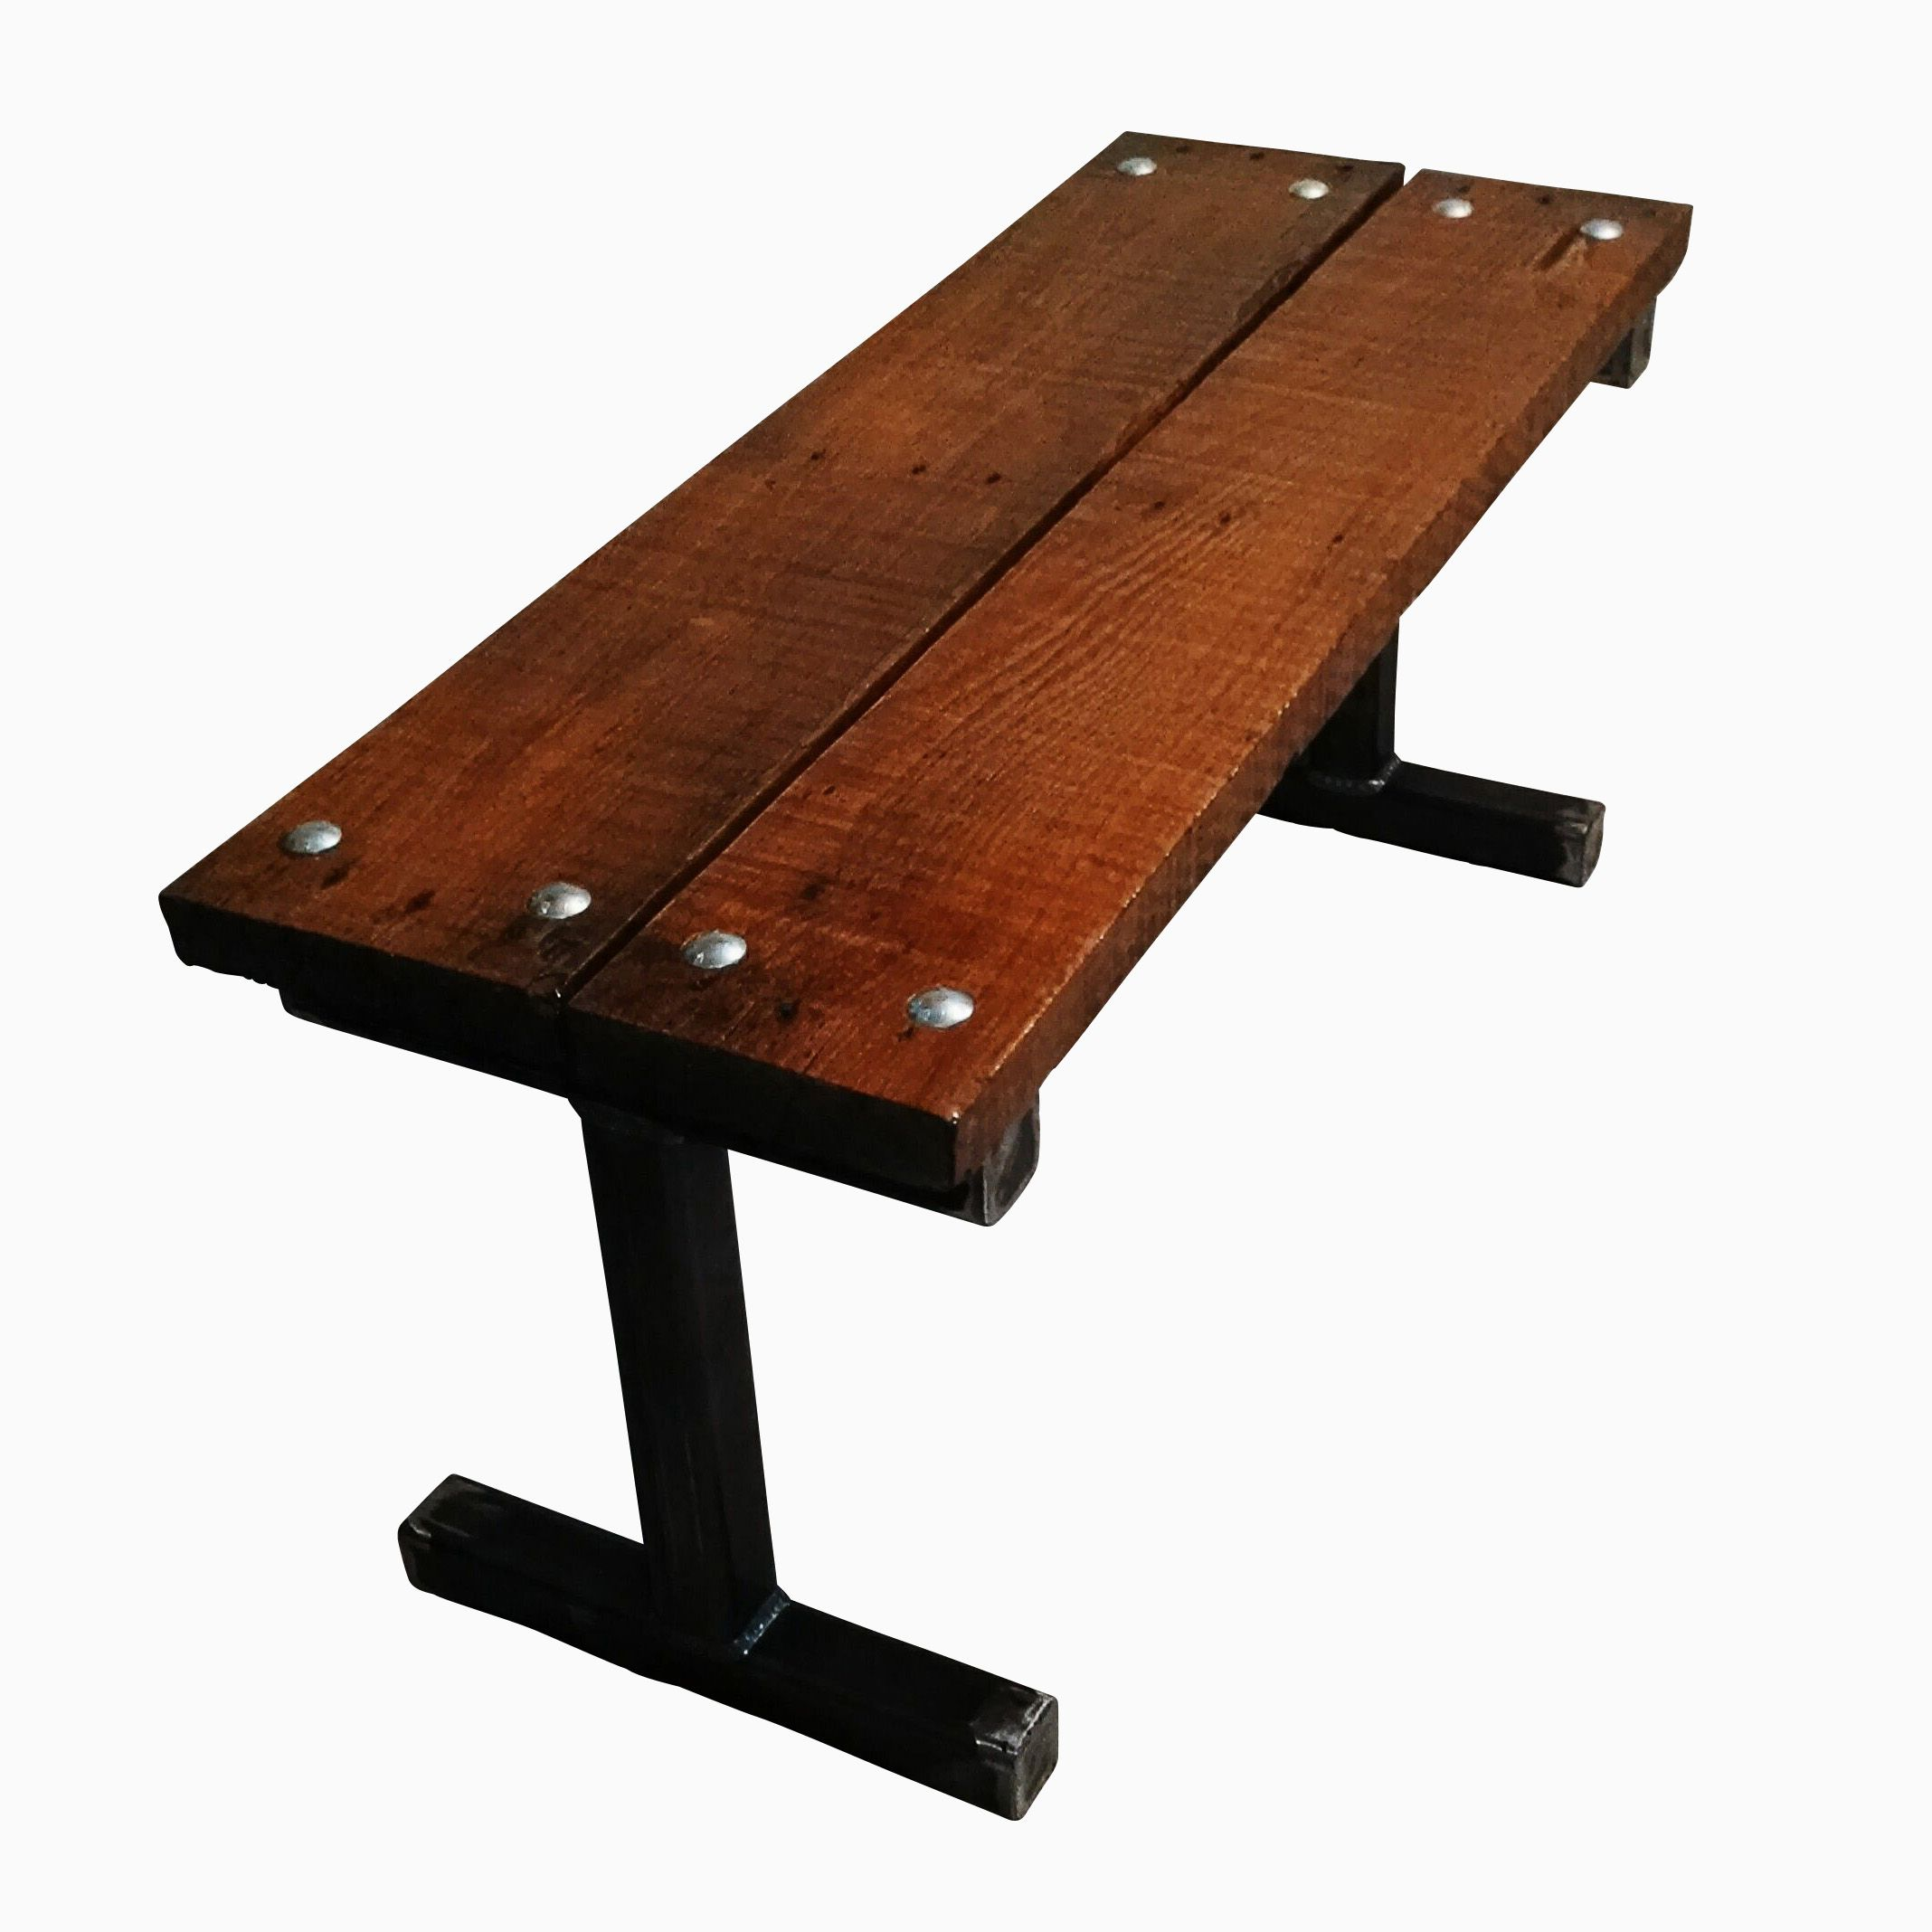 Buy A Handmade Reclaimed Pallet Wood Bench With Carriage Bolts Frame Made To Order From